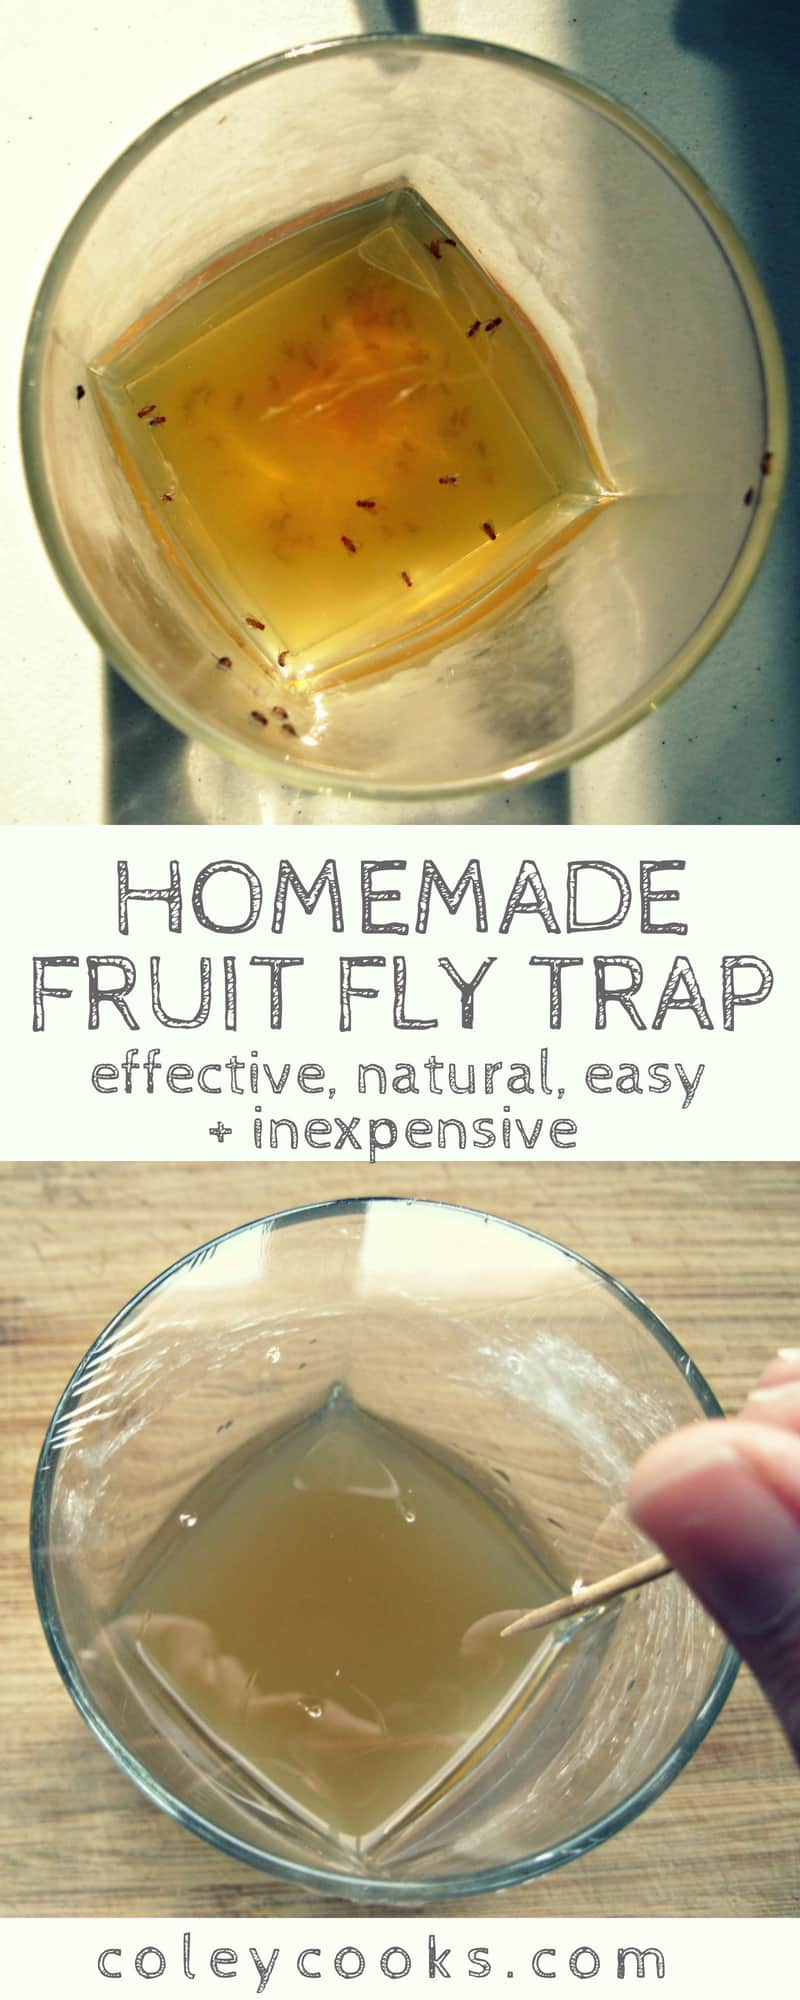 Where Fruit Flies go to Die | Coley Cooks